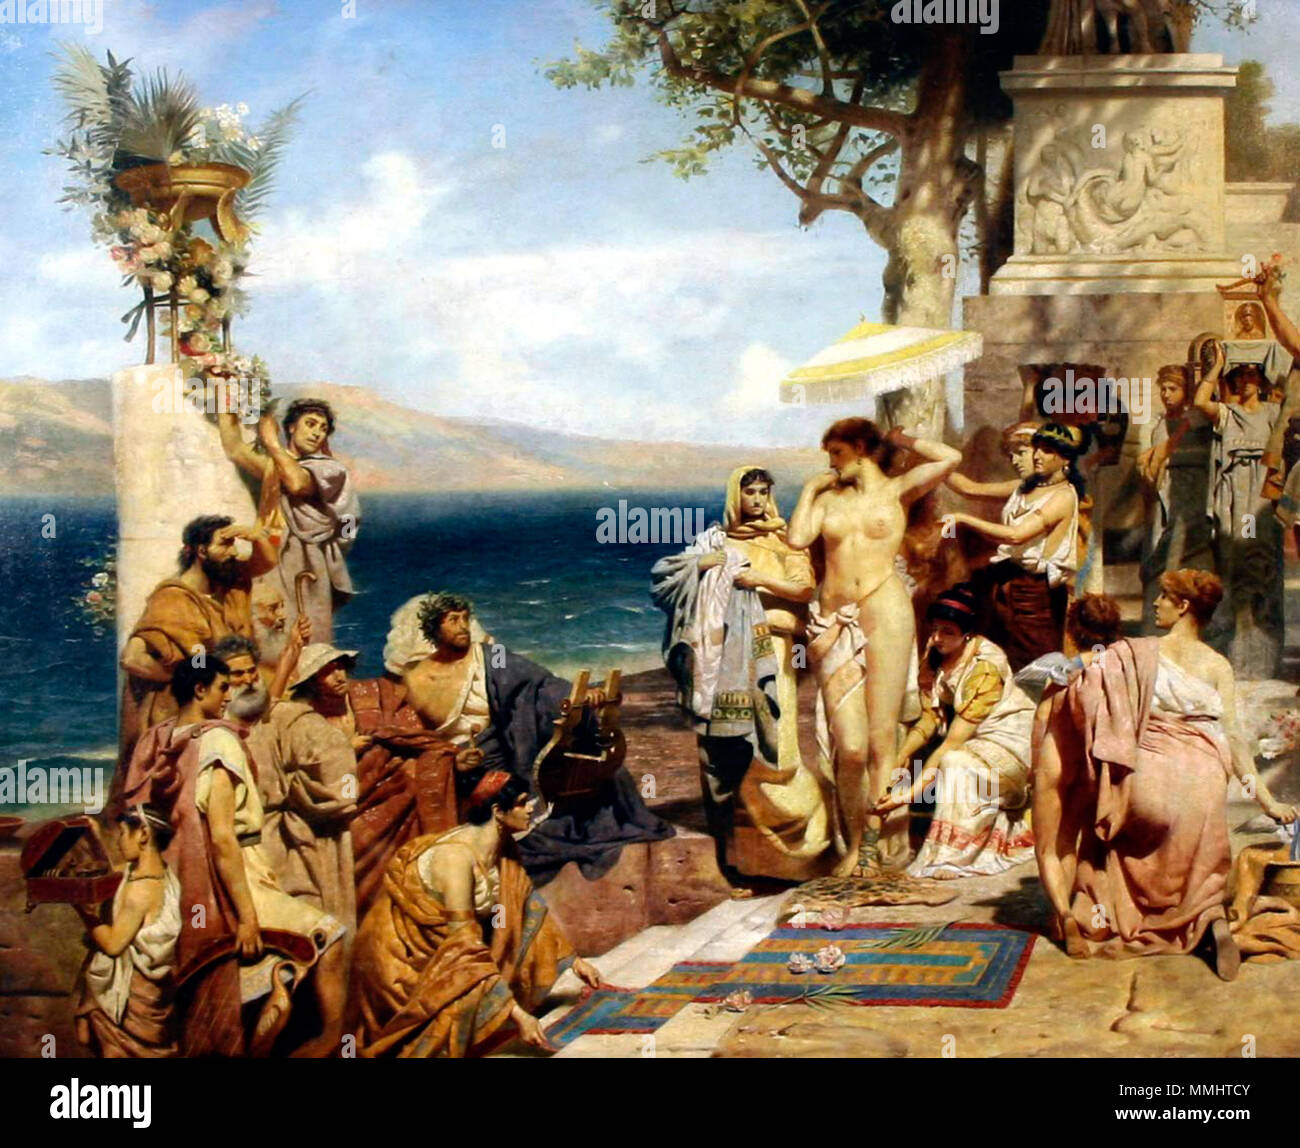 Eleusis Stock Photos Amp Eleusis Stock Images Alamy